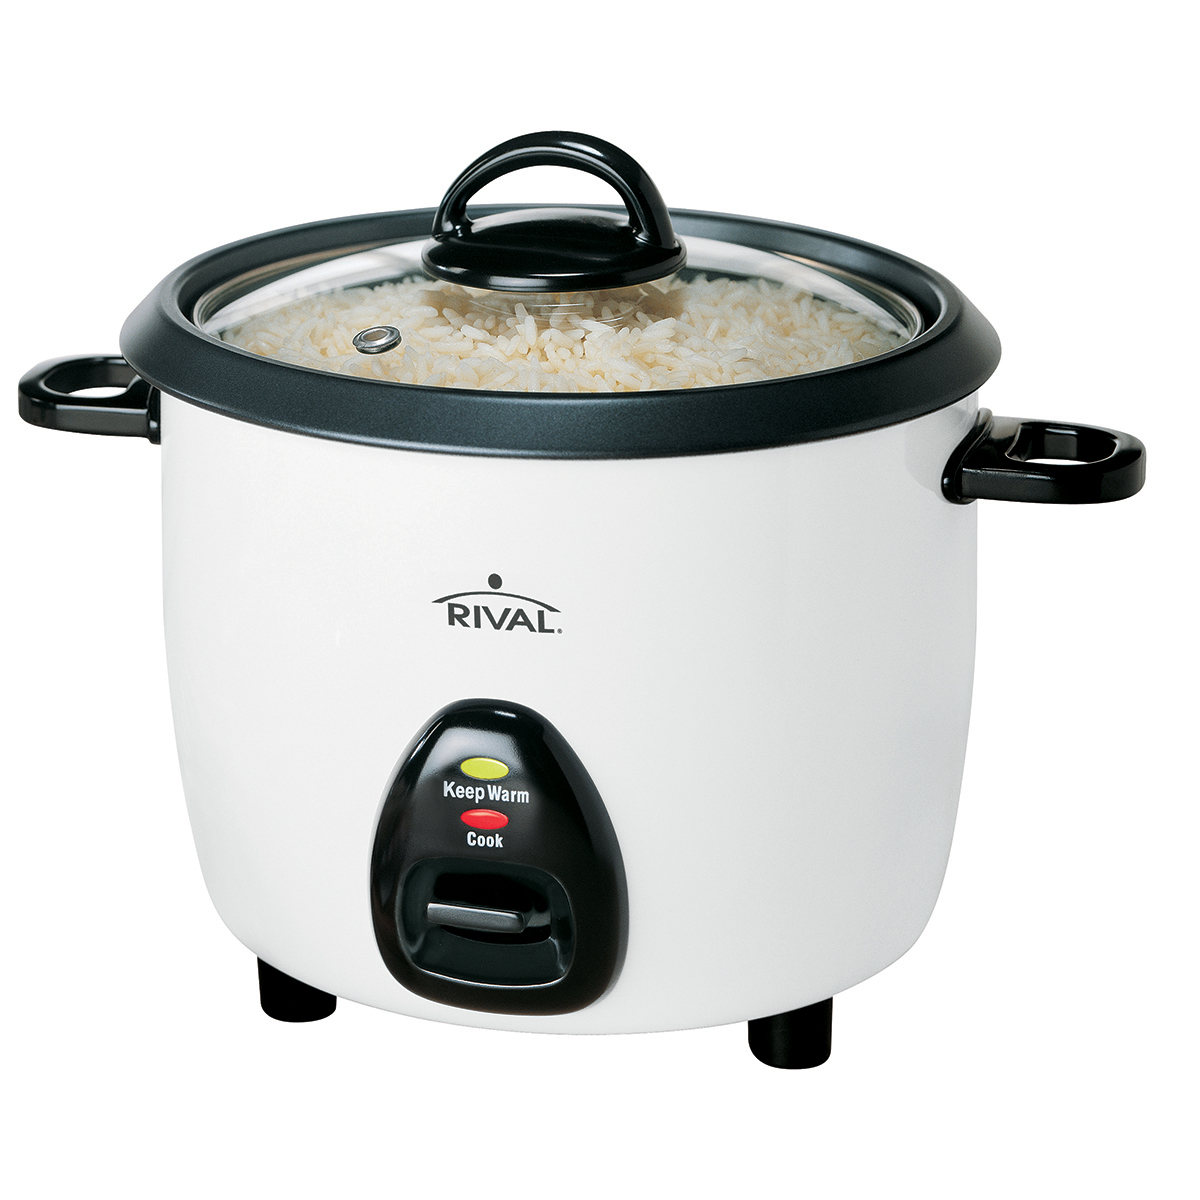 Rival Rc101 10 Cup Rice Cooker With Steamer White 692761546035 Ebay